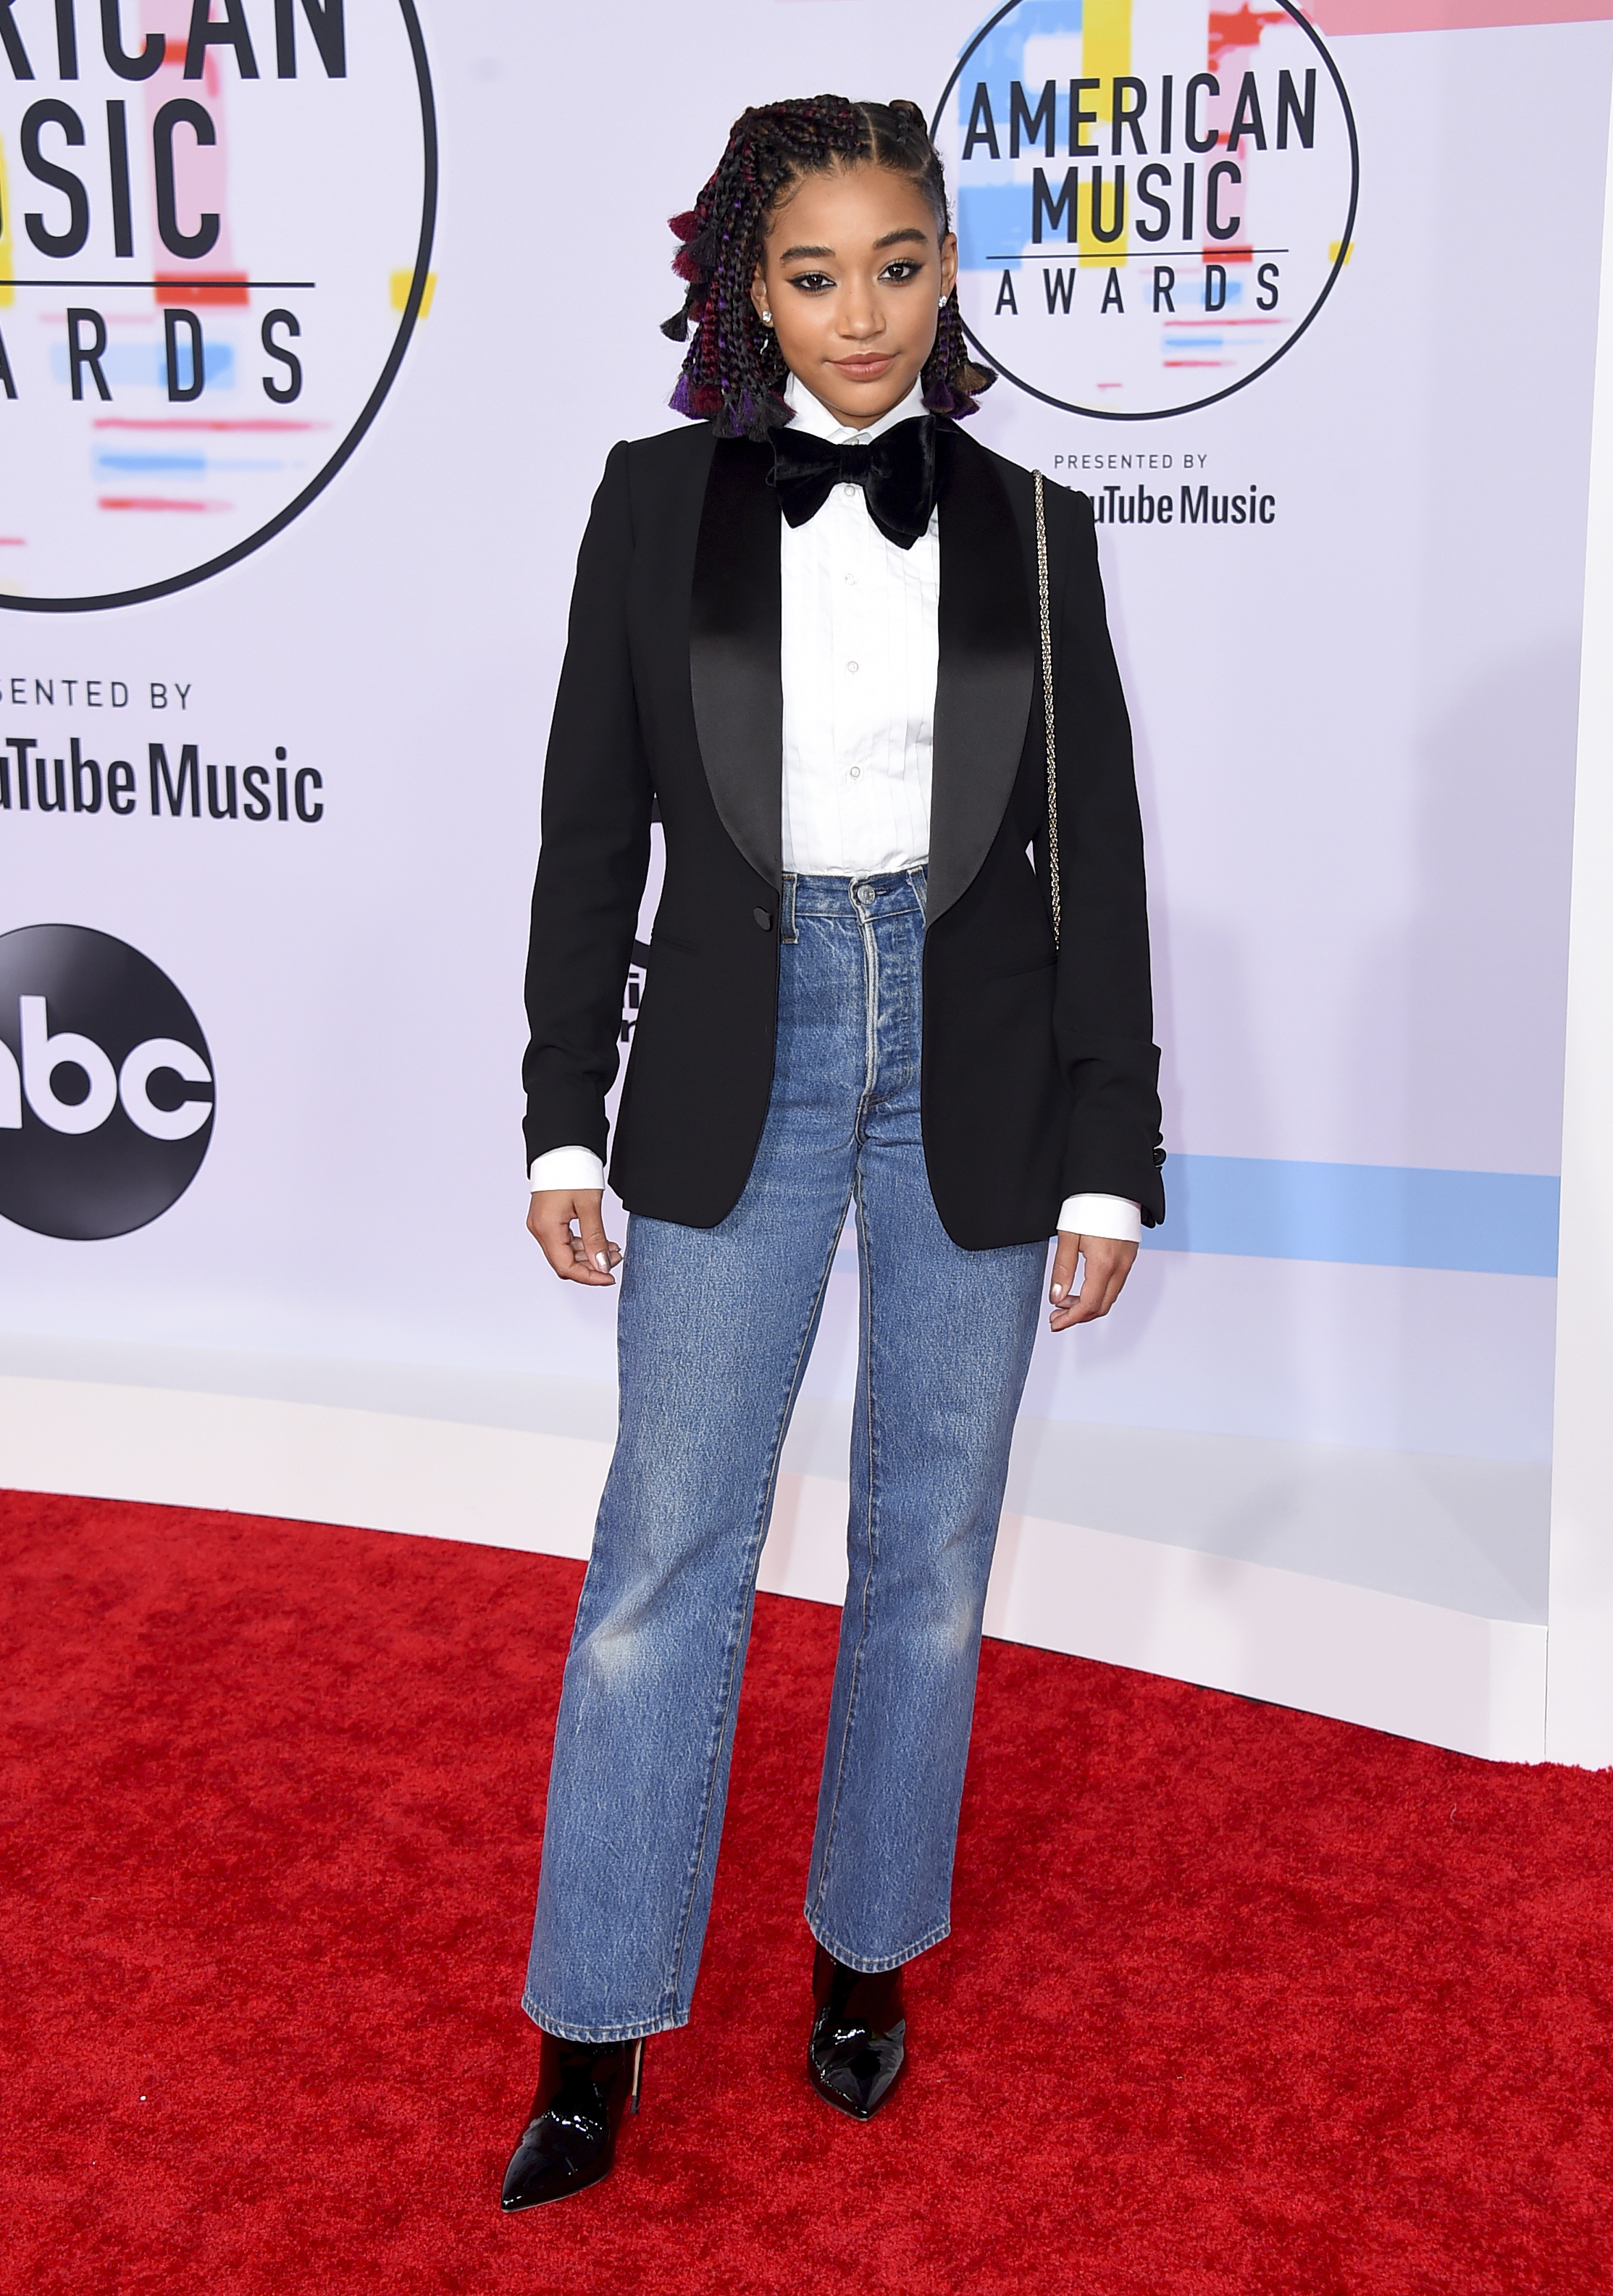 "<div class=""meta image-caption""><div class=""origin-logo origin-image none""><span>none</span></div><span class=""caption-text"">Amandla Stenberg arrives at the American Music Awards on Tuesday, Oct. 9, 2018, at the Microsoft Theater in Los Angeles. (Jordan Strauss/Invision/AP)</span></div>"